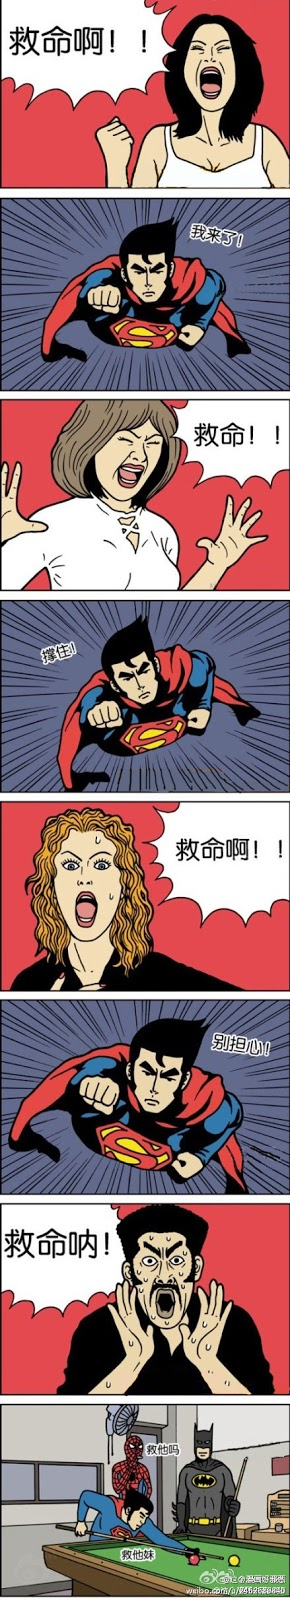 Funny Comics - Superman, Spiderman, Batman